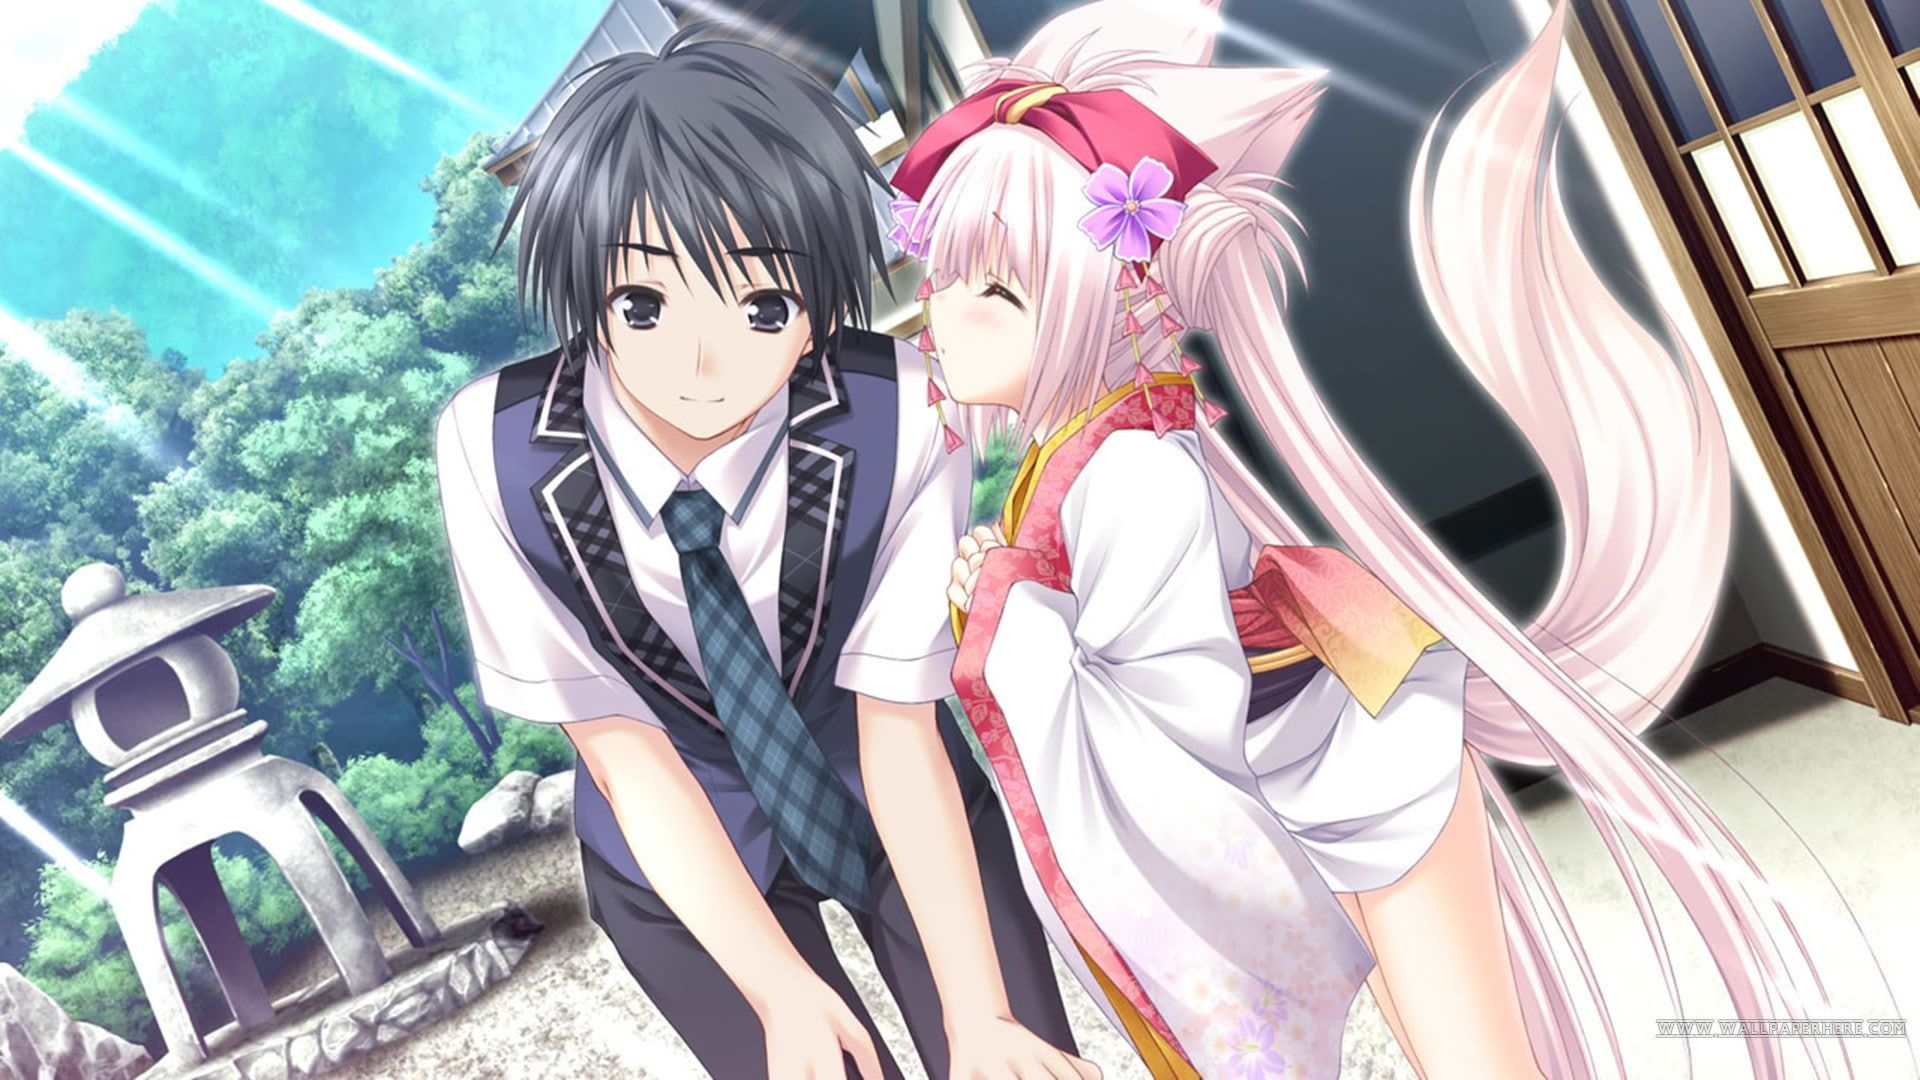 Pin On Quick Saves Cute anime couple wallpaper 1920x1080